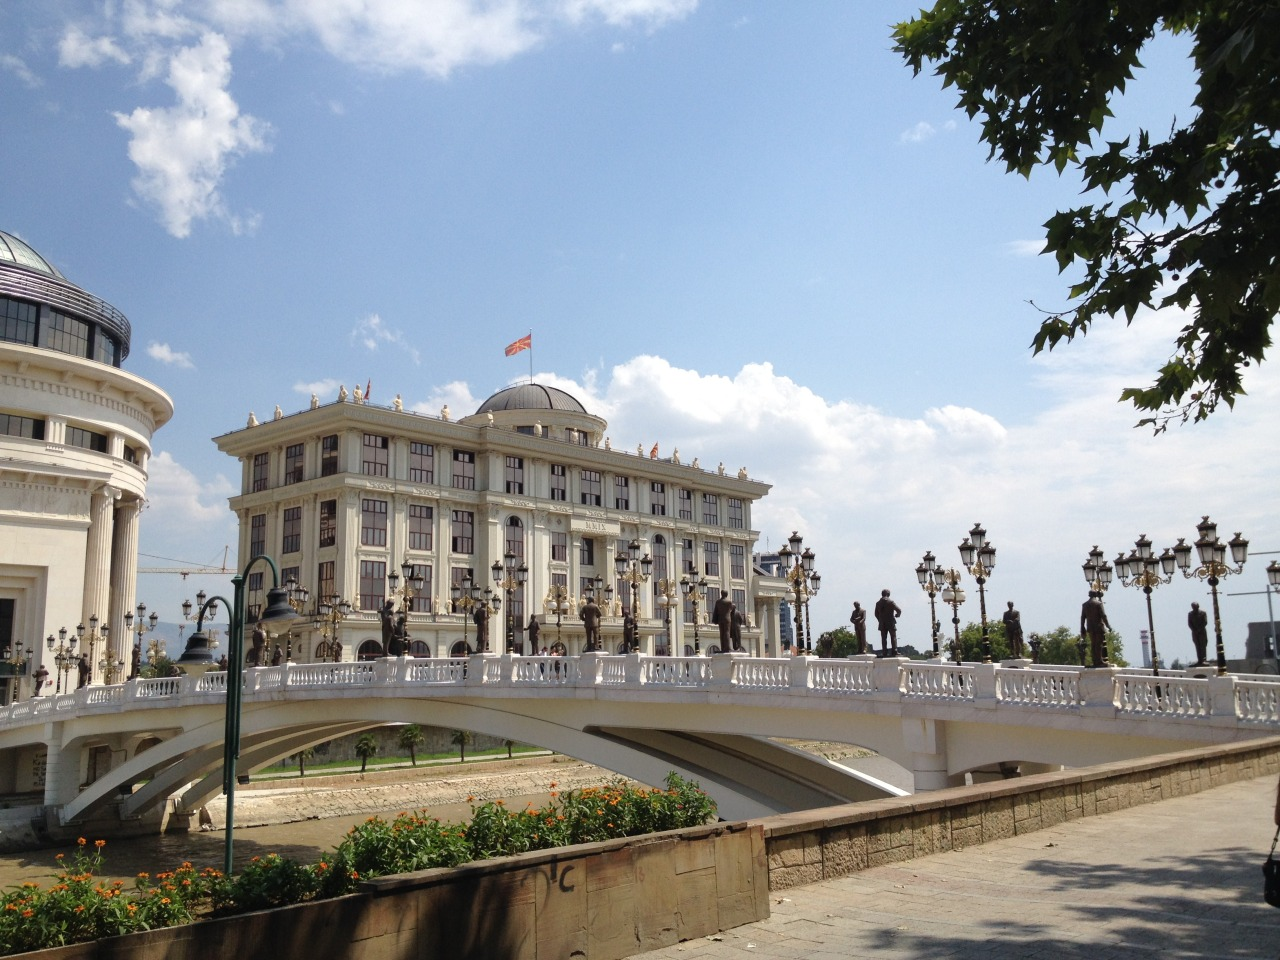 Ostentatious monuments in Skopje